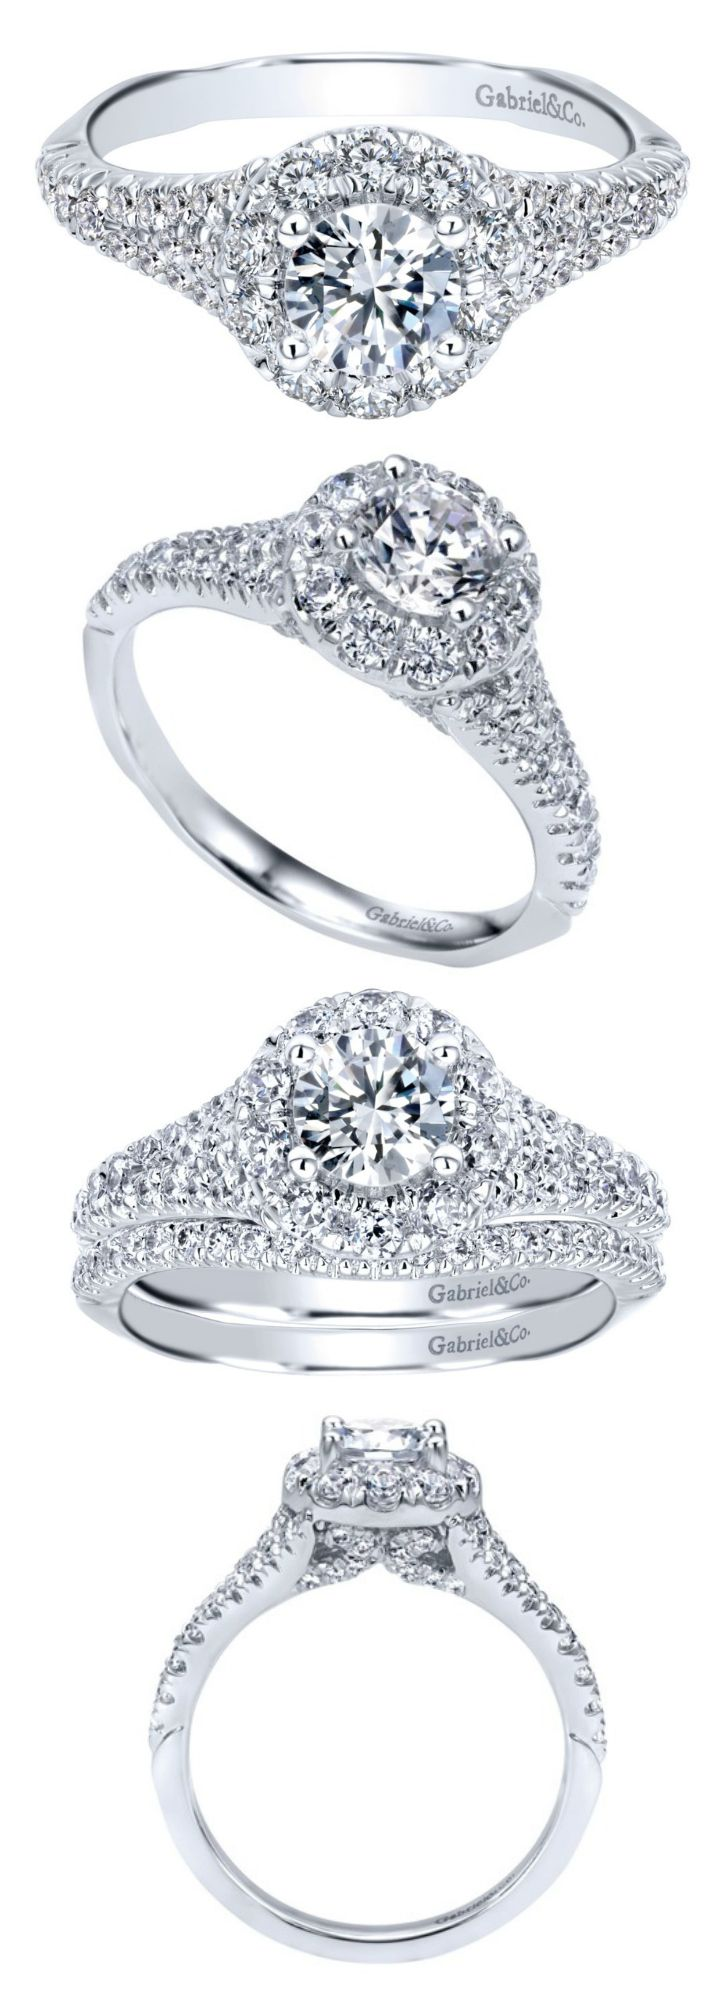 74 Best Rings Images On Pinterest Beautiful Pretty Dazzle Guard Diamond Coating This Is A Sensational Halo Engagement Ring With Lovely Round Cut One Already Picked